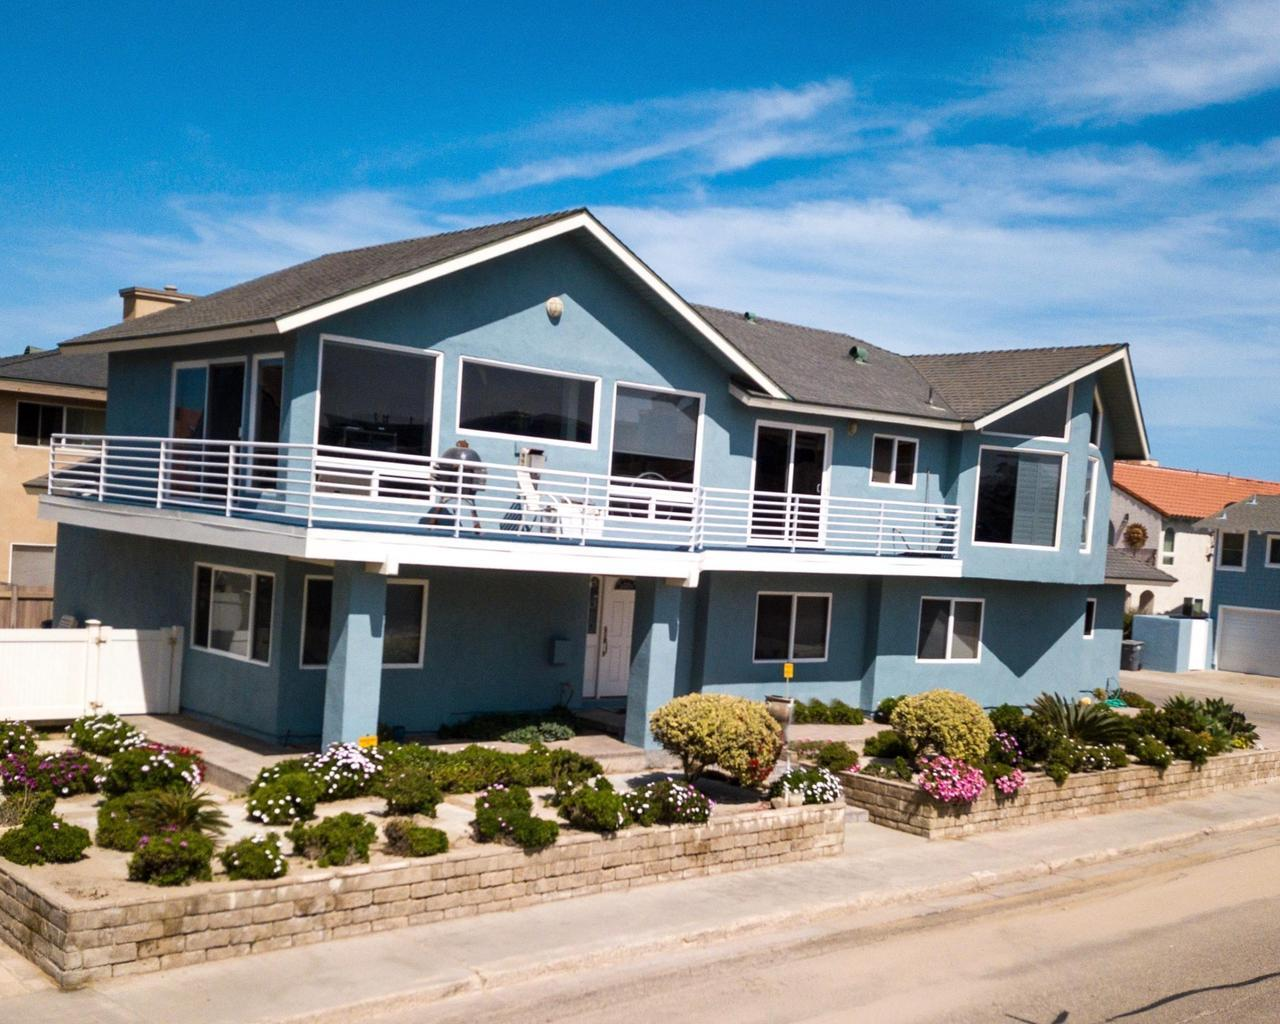 860 Mandalay Beach Road Oxnard, CA. | MLS# 218006803 | Specializing ...